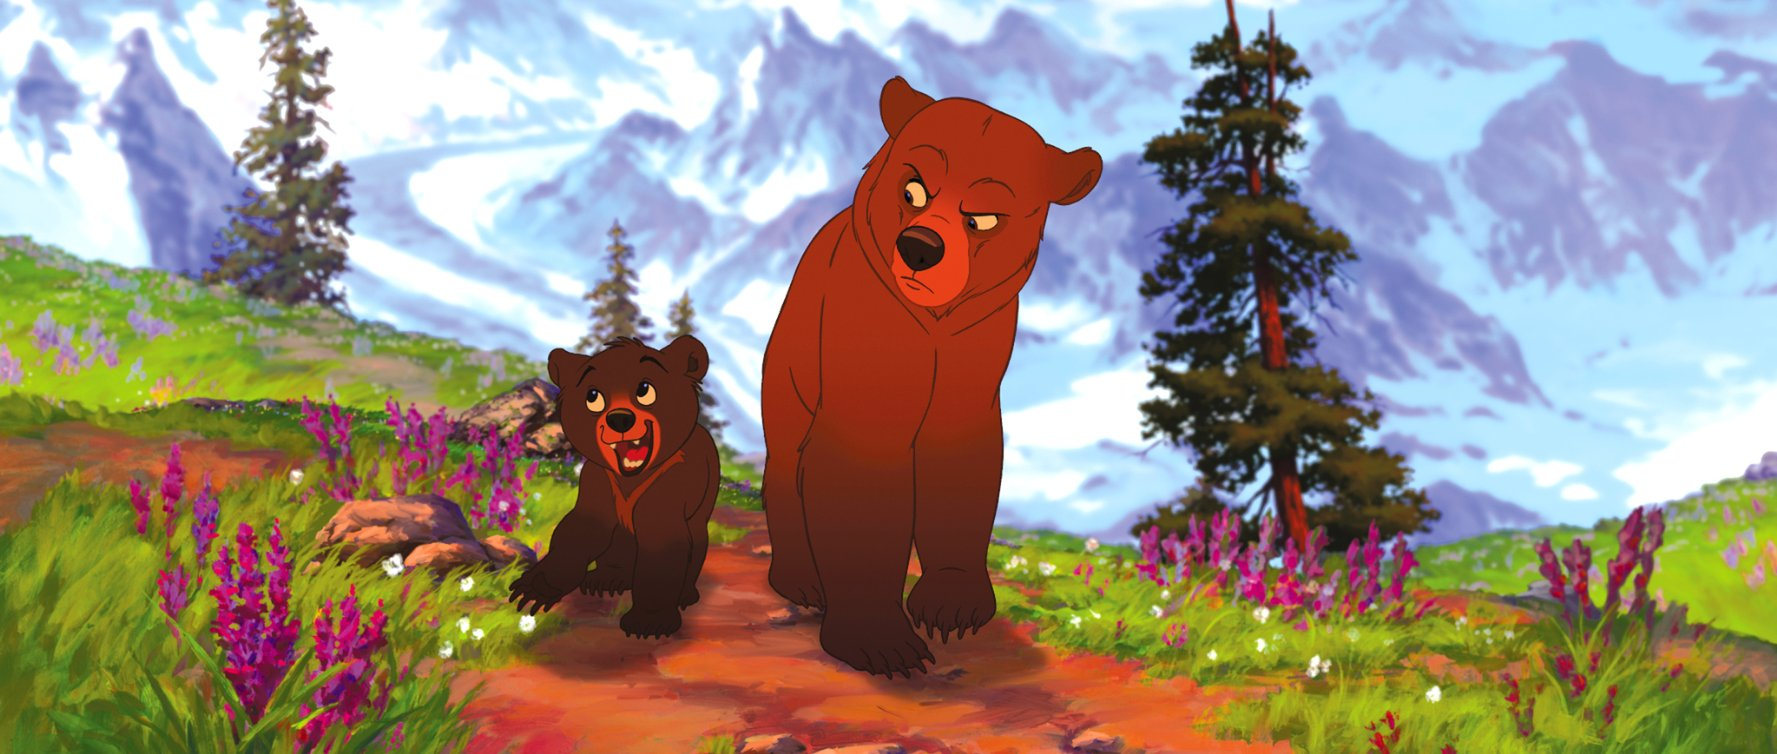 Brother Bear 2003 Full Movie Watch In Hd Online For Free -7709